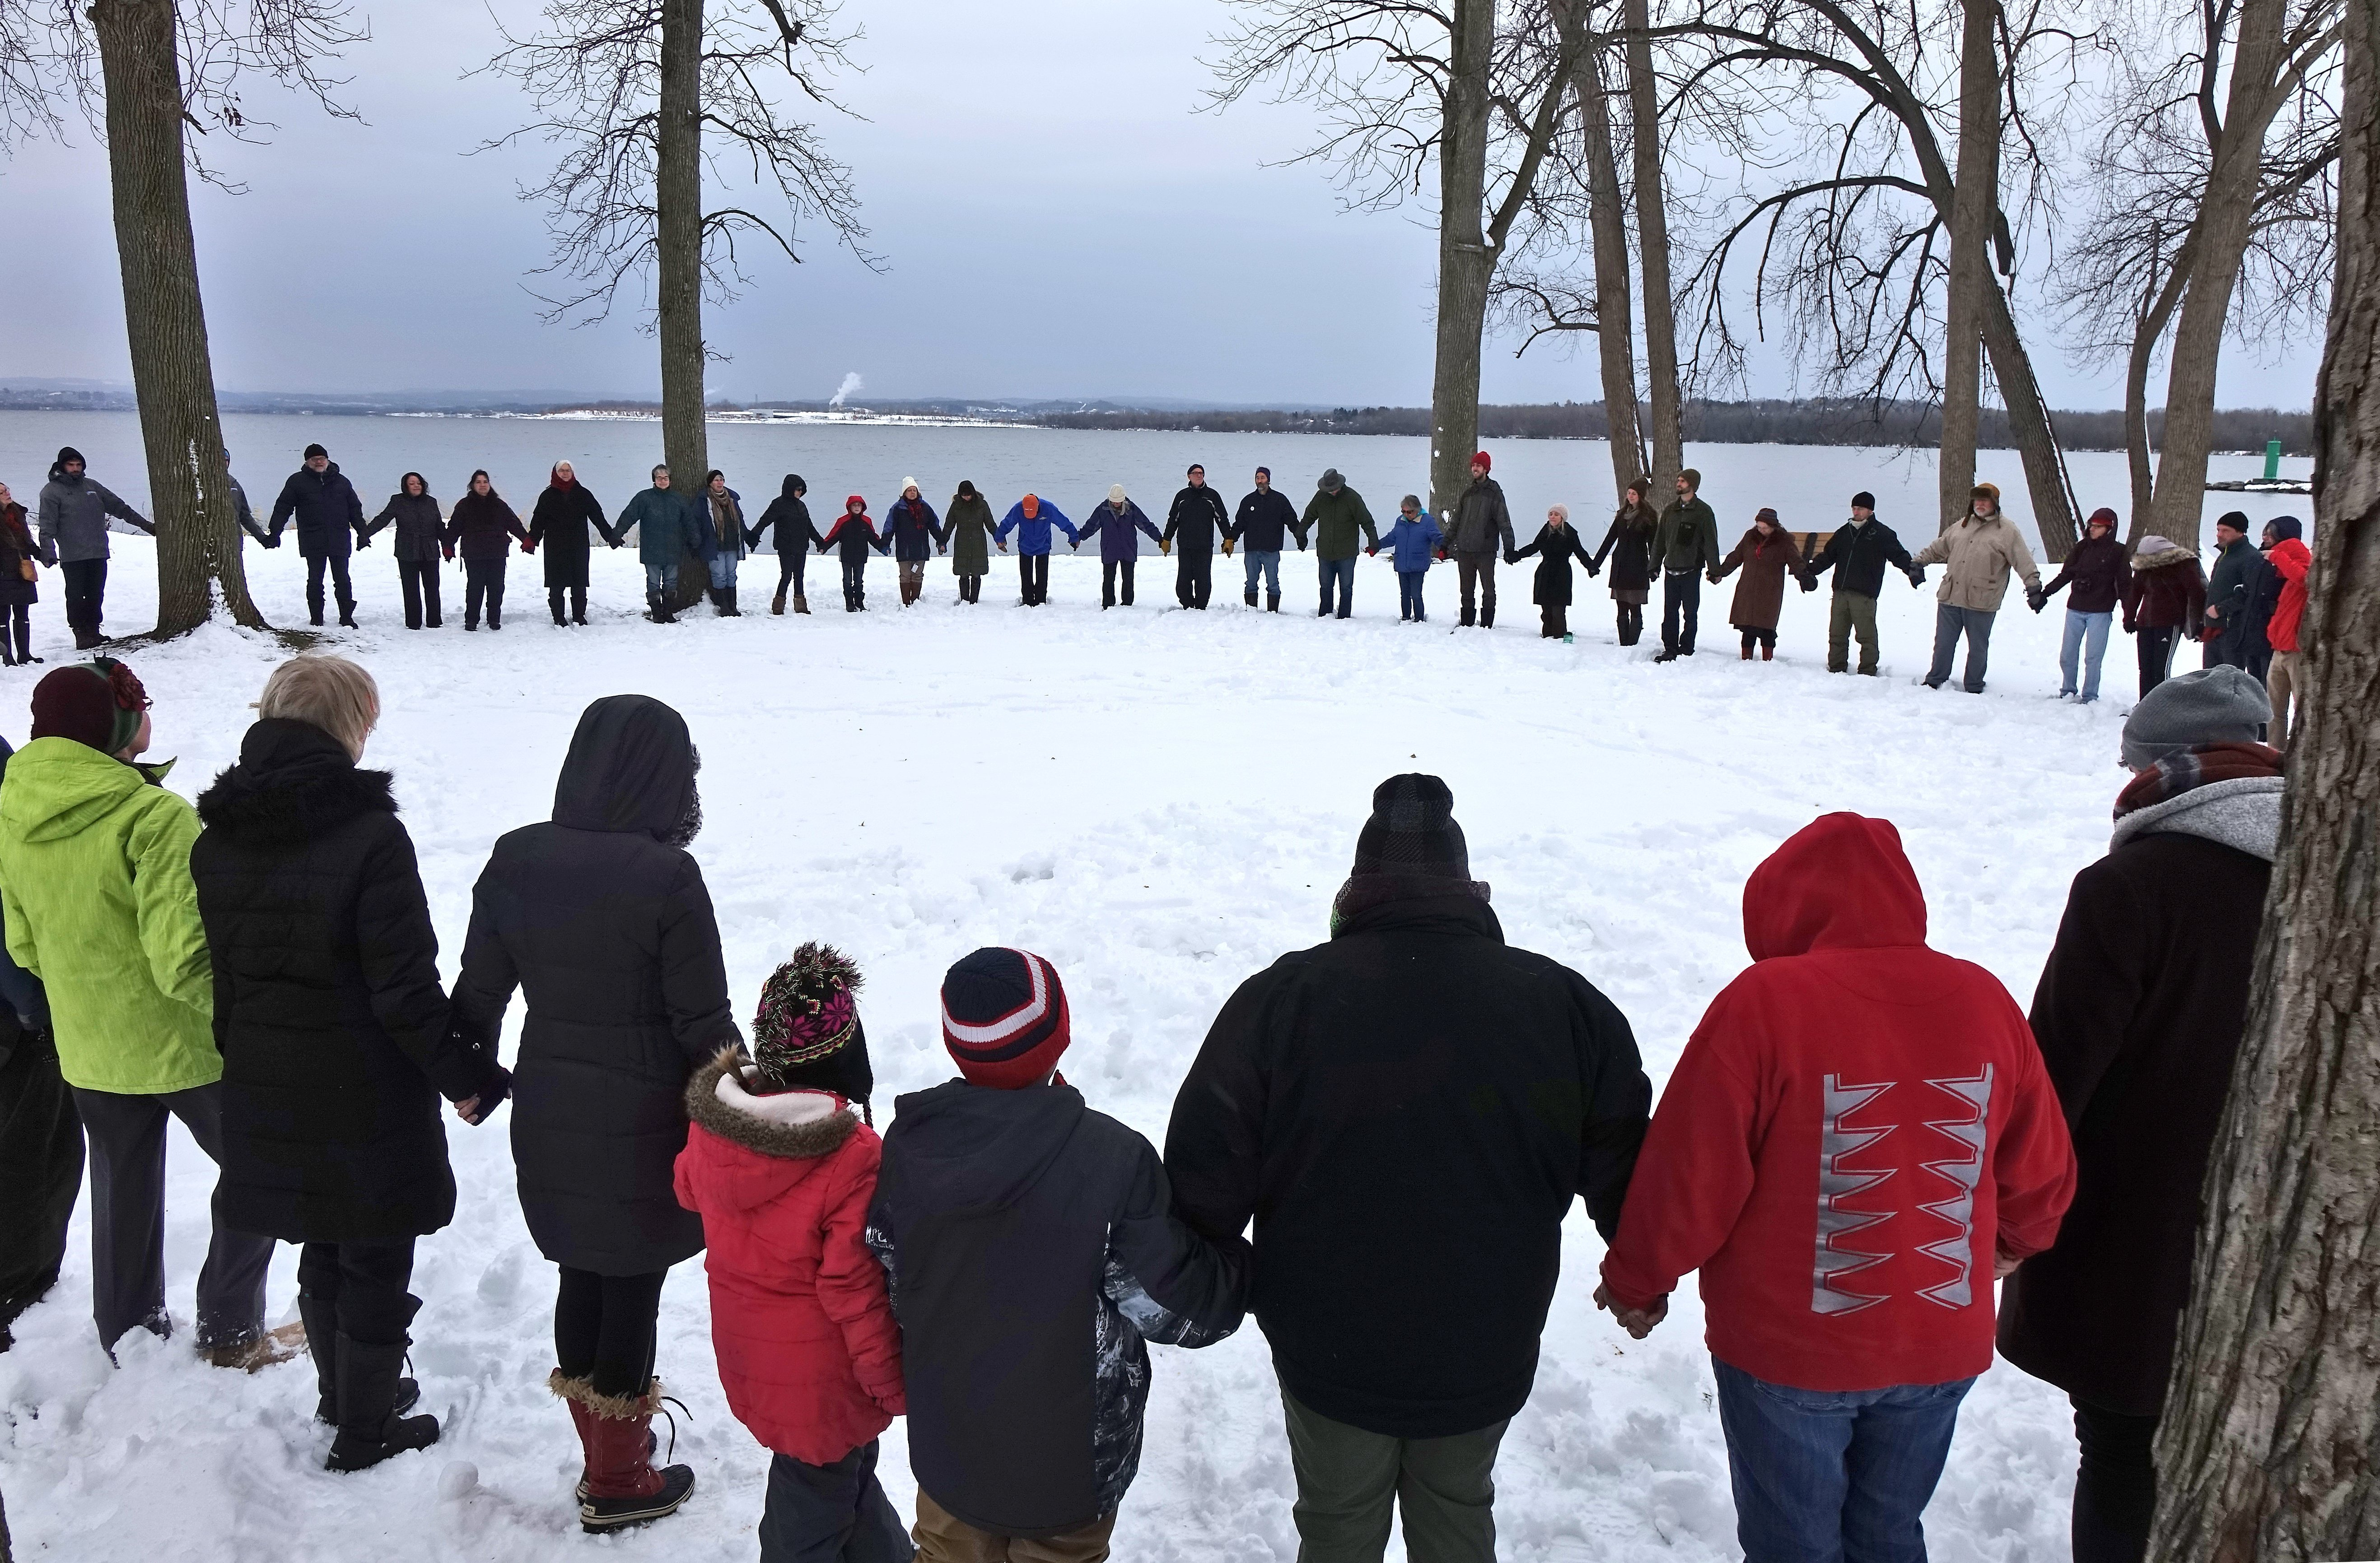 Around 90 people join hands in a minute of silence during a Thanksgiving Circle of Peace and Hope held near the shore of Onondaga Lake at Willow Bay in Onondaga Lake Park Thursday morning.  The event was organized by Neighbors of the Onondaga Nation.  November 24, 2016.  Michael Greenlar | mgreenlar@syracuse.com SYR